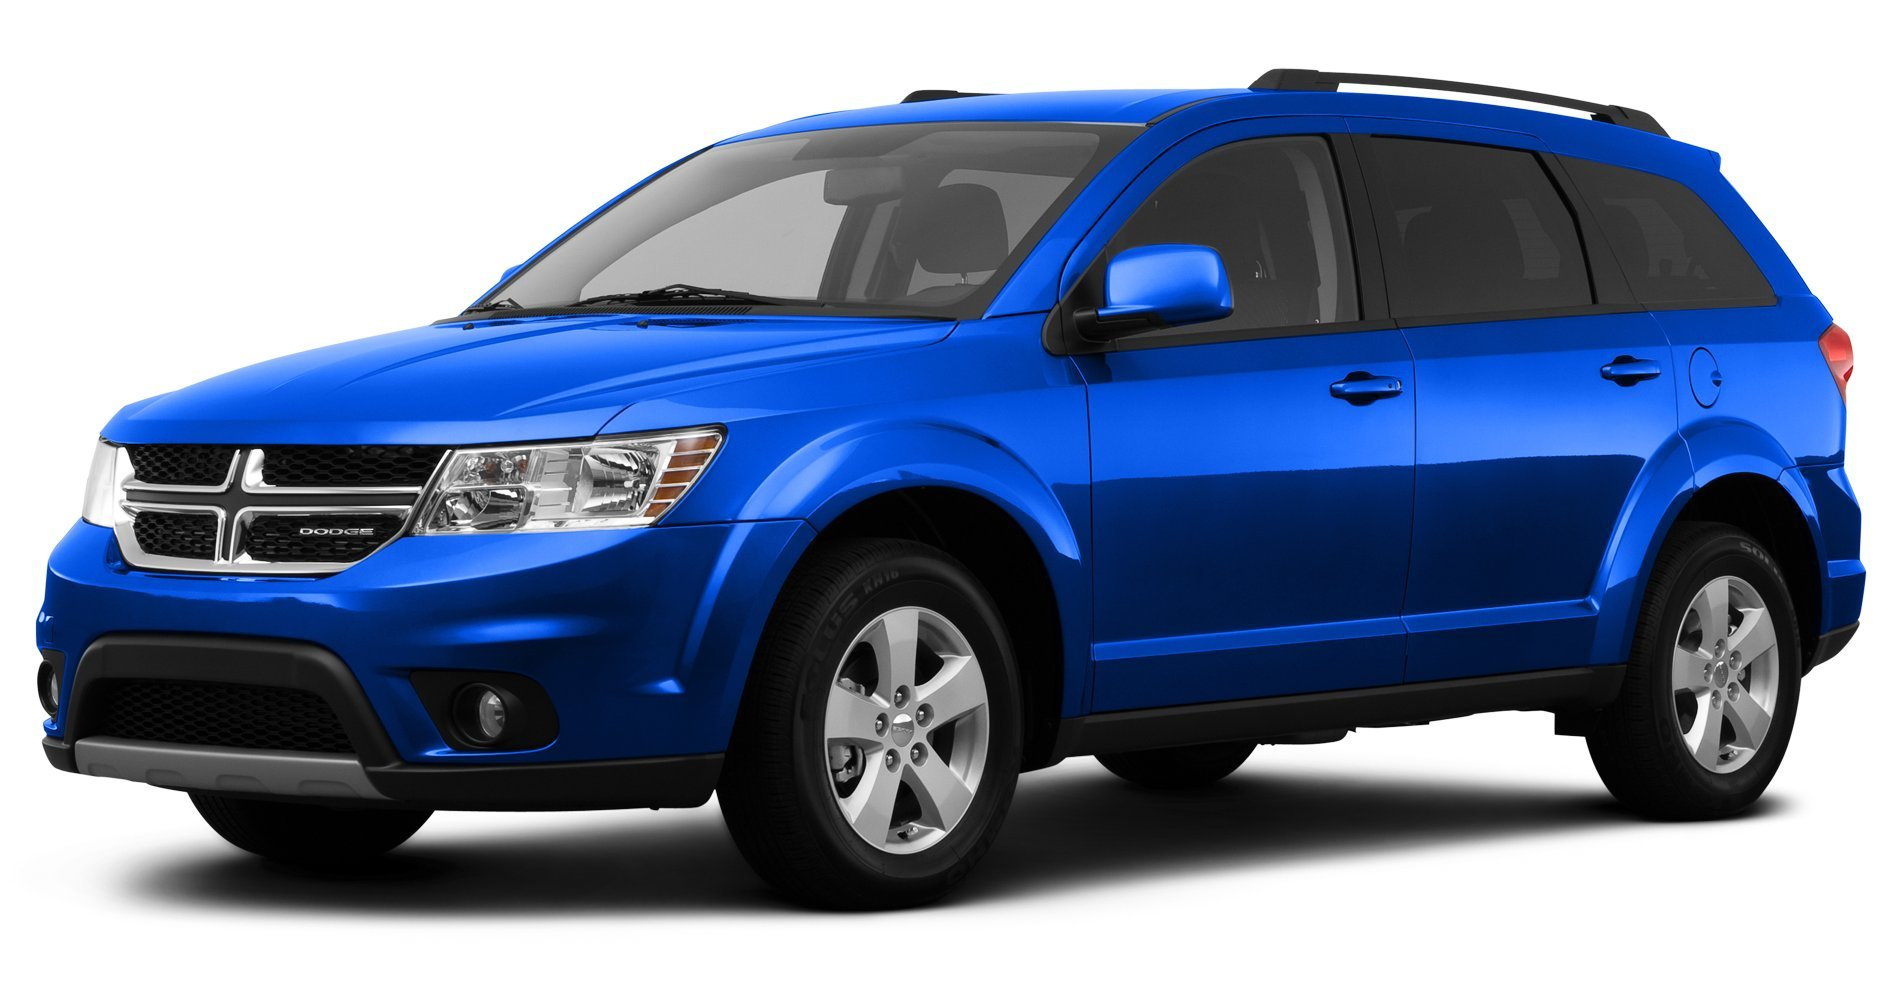 71F0GREanCL amazon com 2012 dodge journey reviews, images, and specs vehicles  at gsmx.co